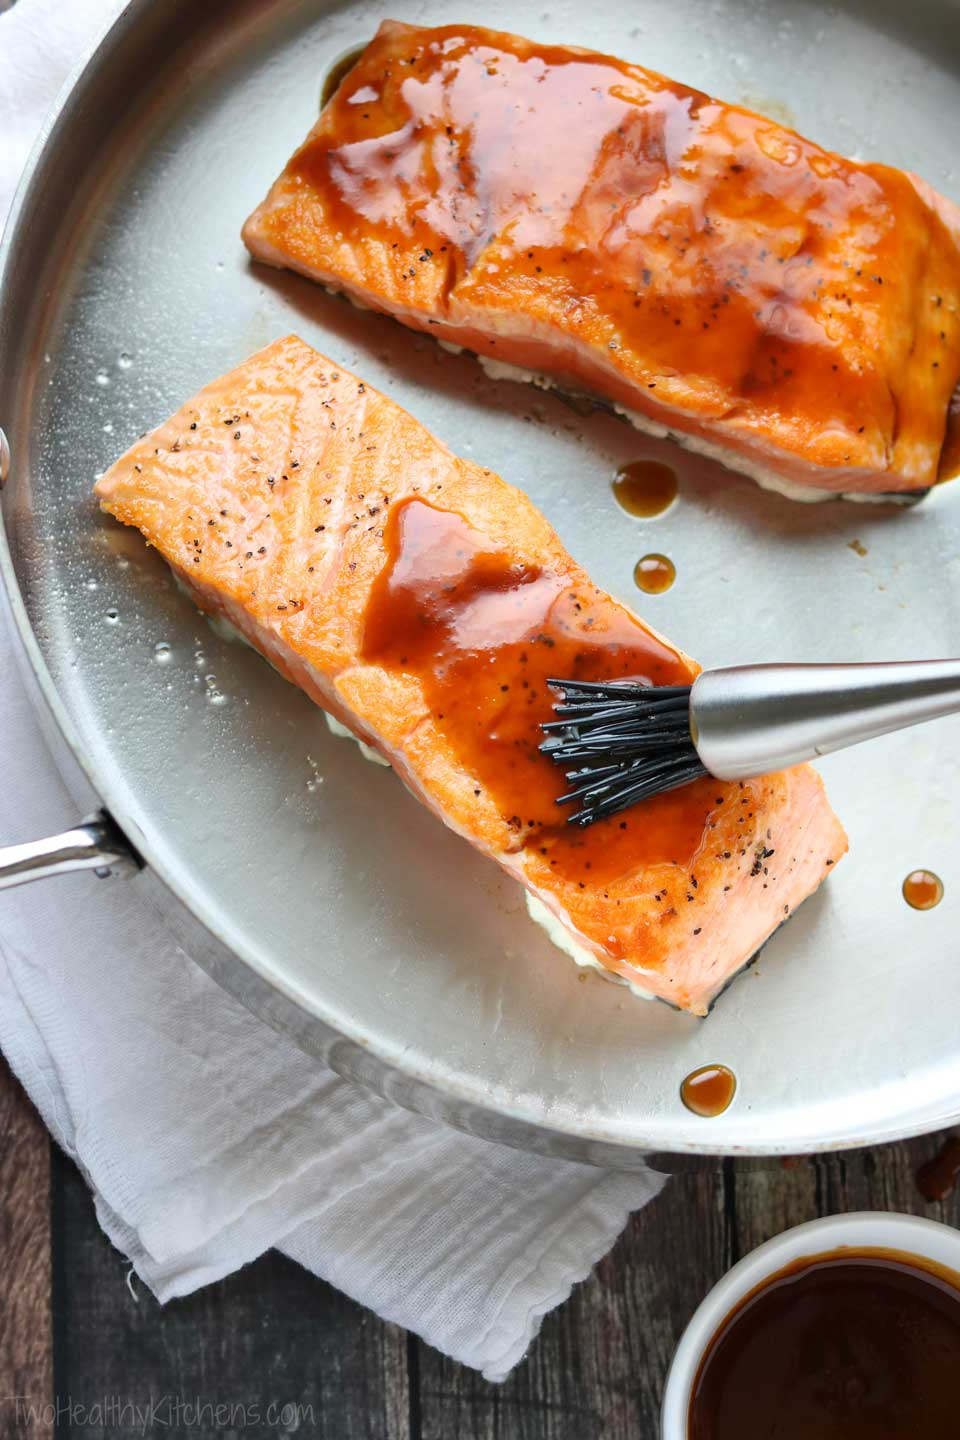 Brushed on just before the salmon is baked, the Red-Miso Glaze is an intensely flavorful addition.